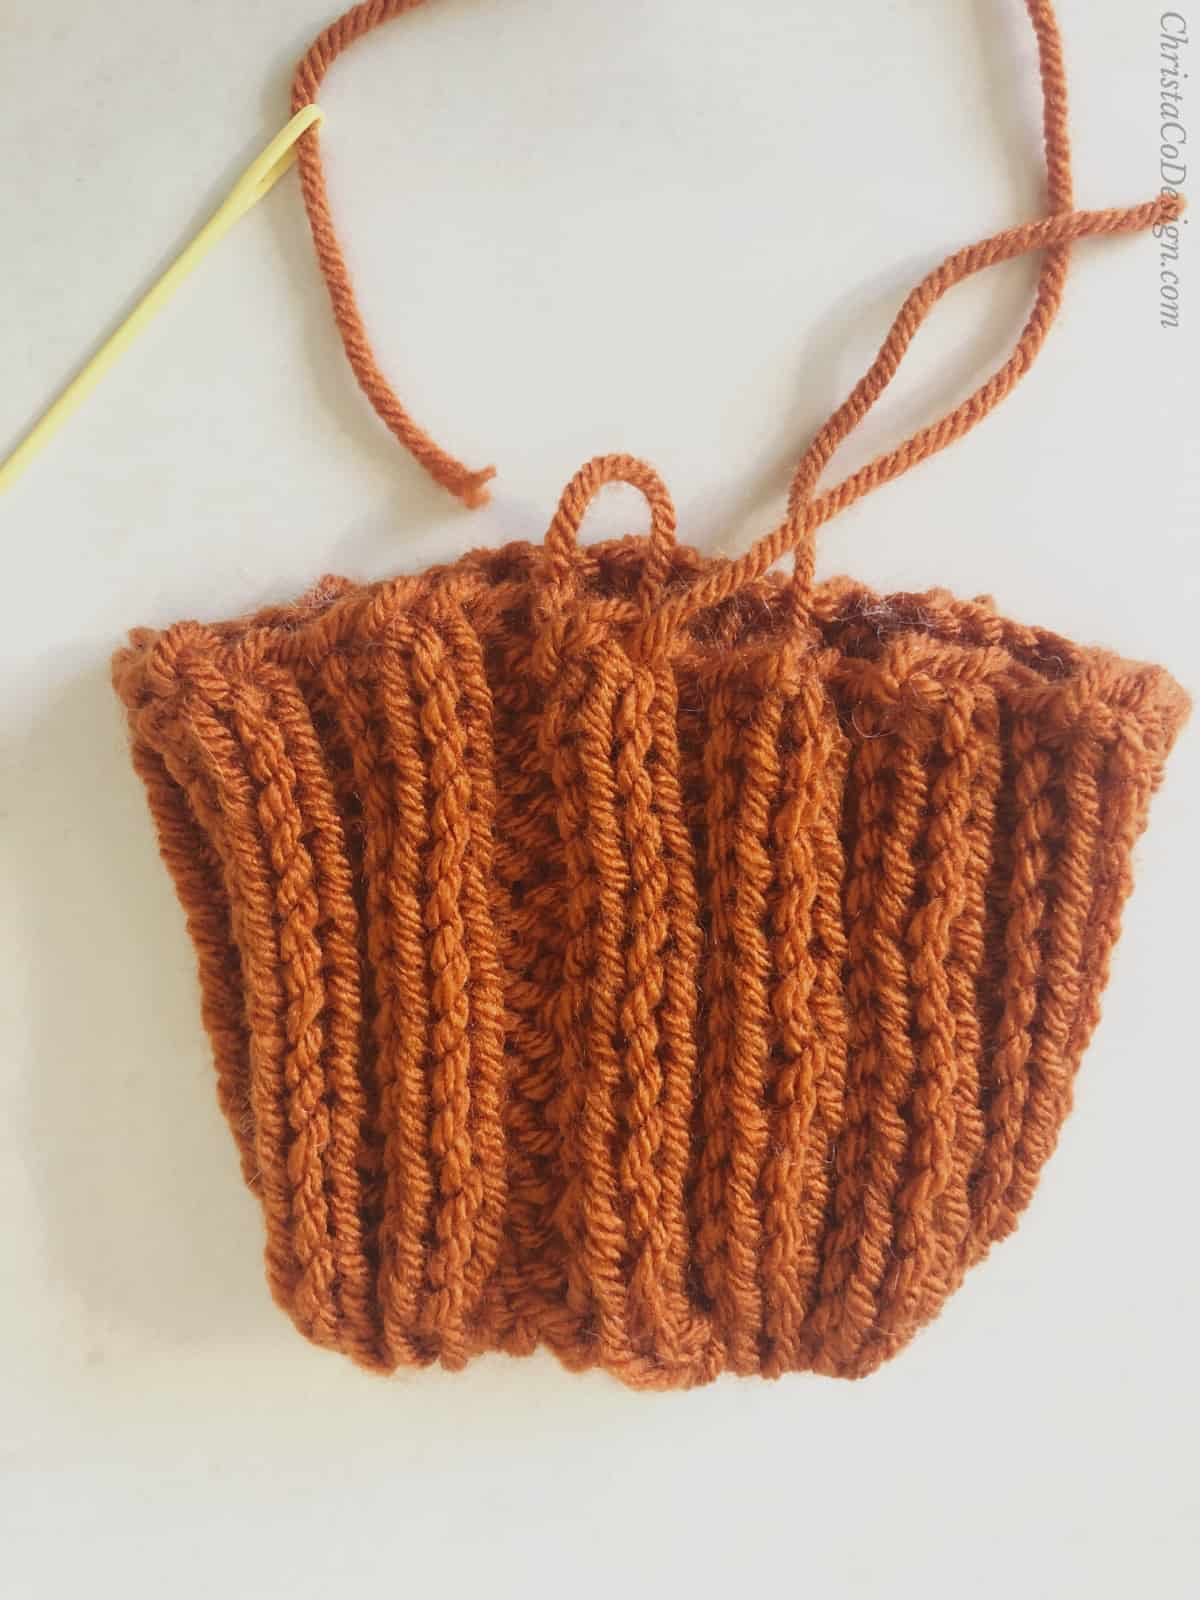 picture of knit pumpkin seamed in ribbing